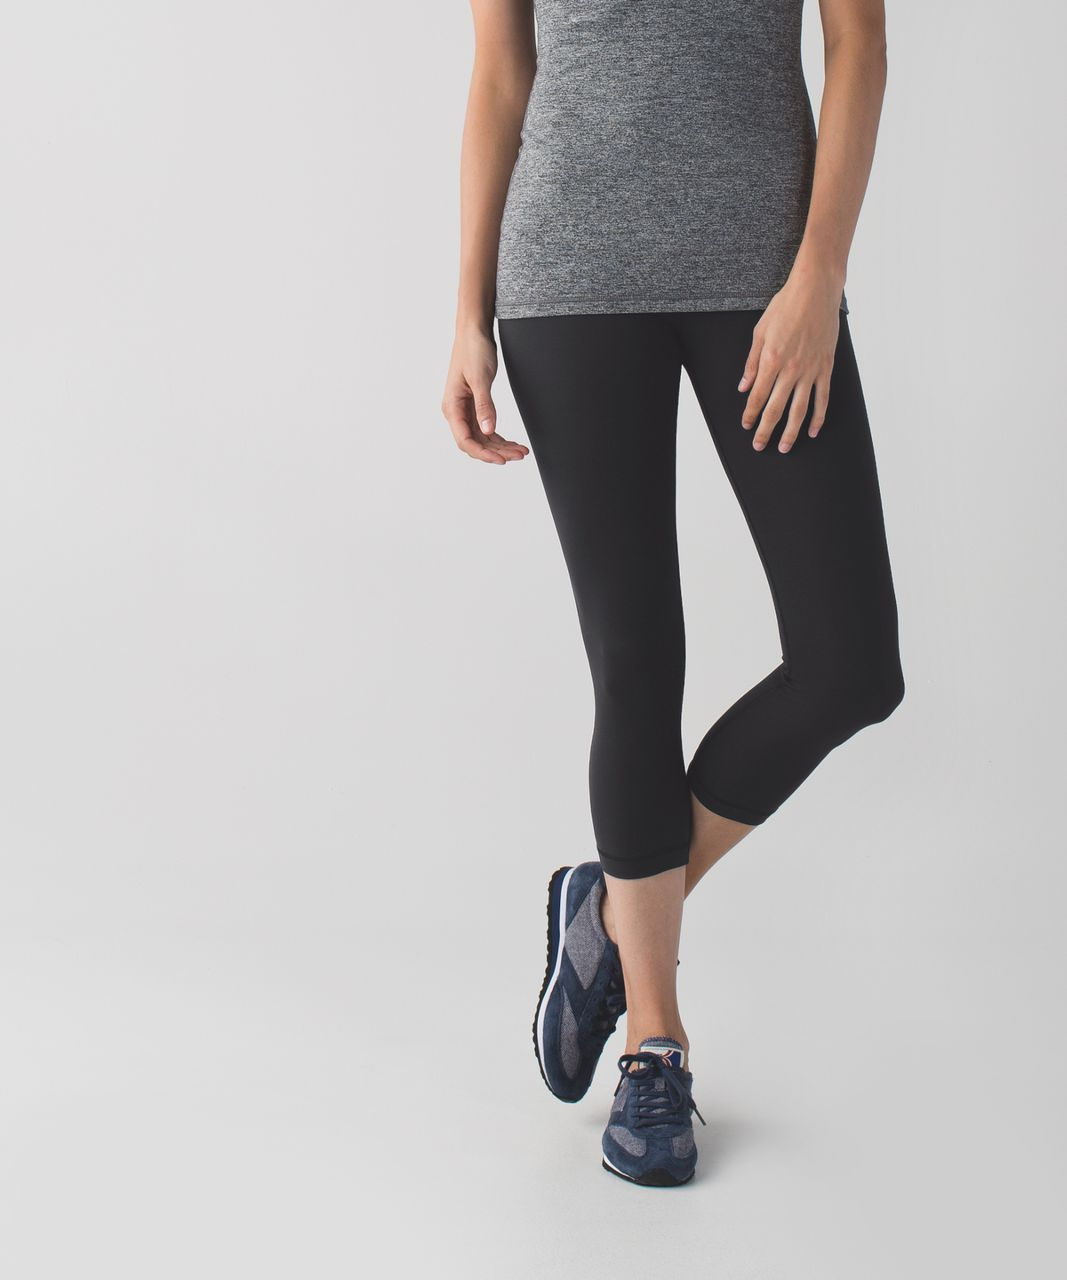 Lululemon Wunder Under Crop II *Full-On Luxtreme - Black